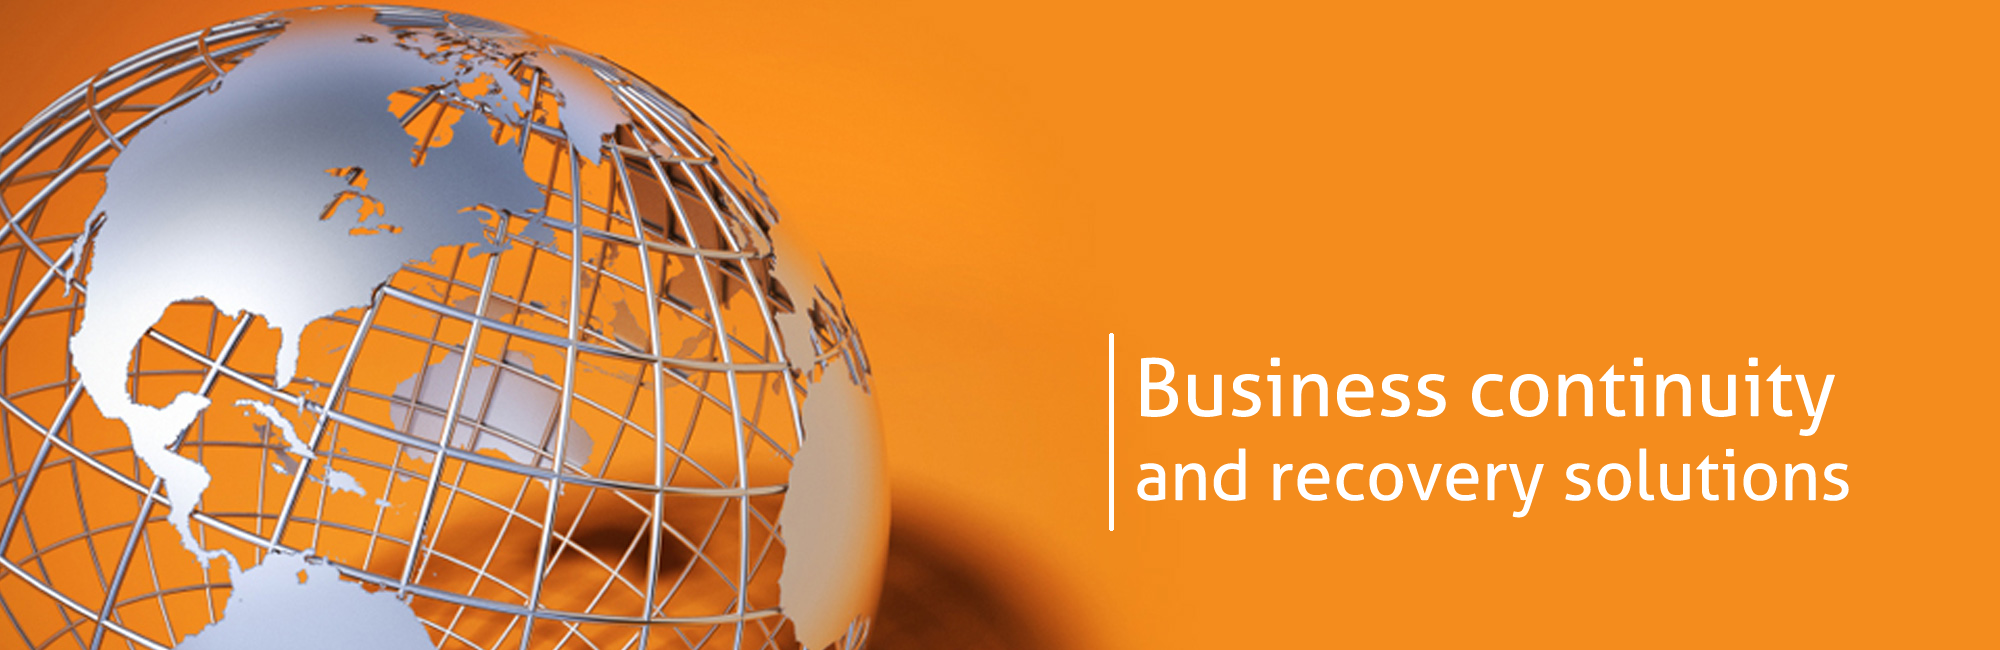 Business continuity and recovery solutions